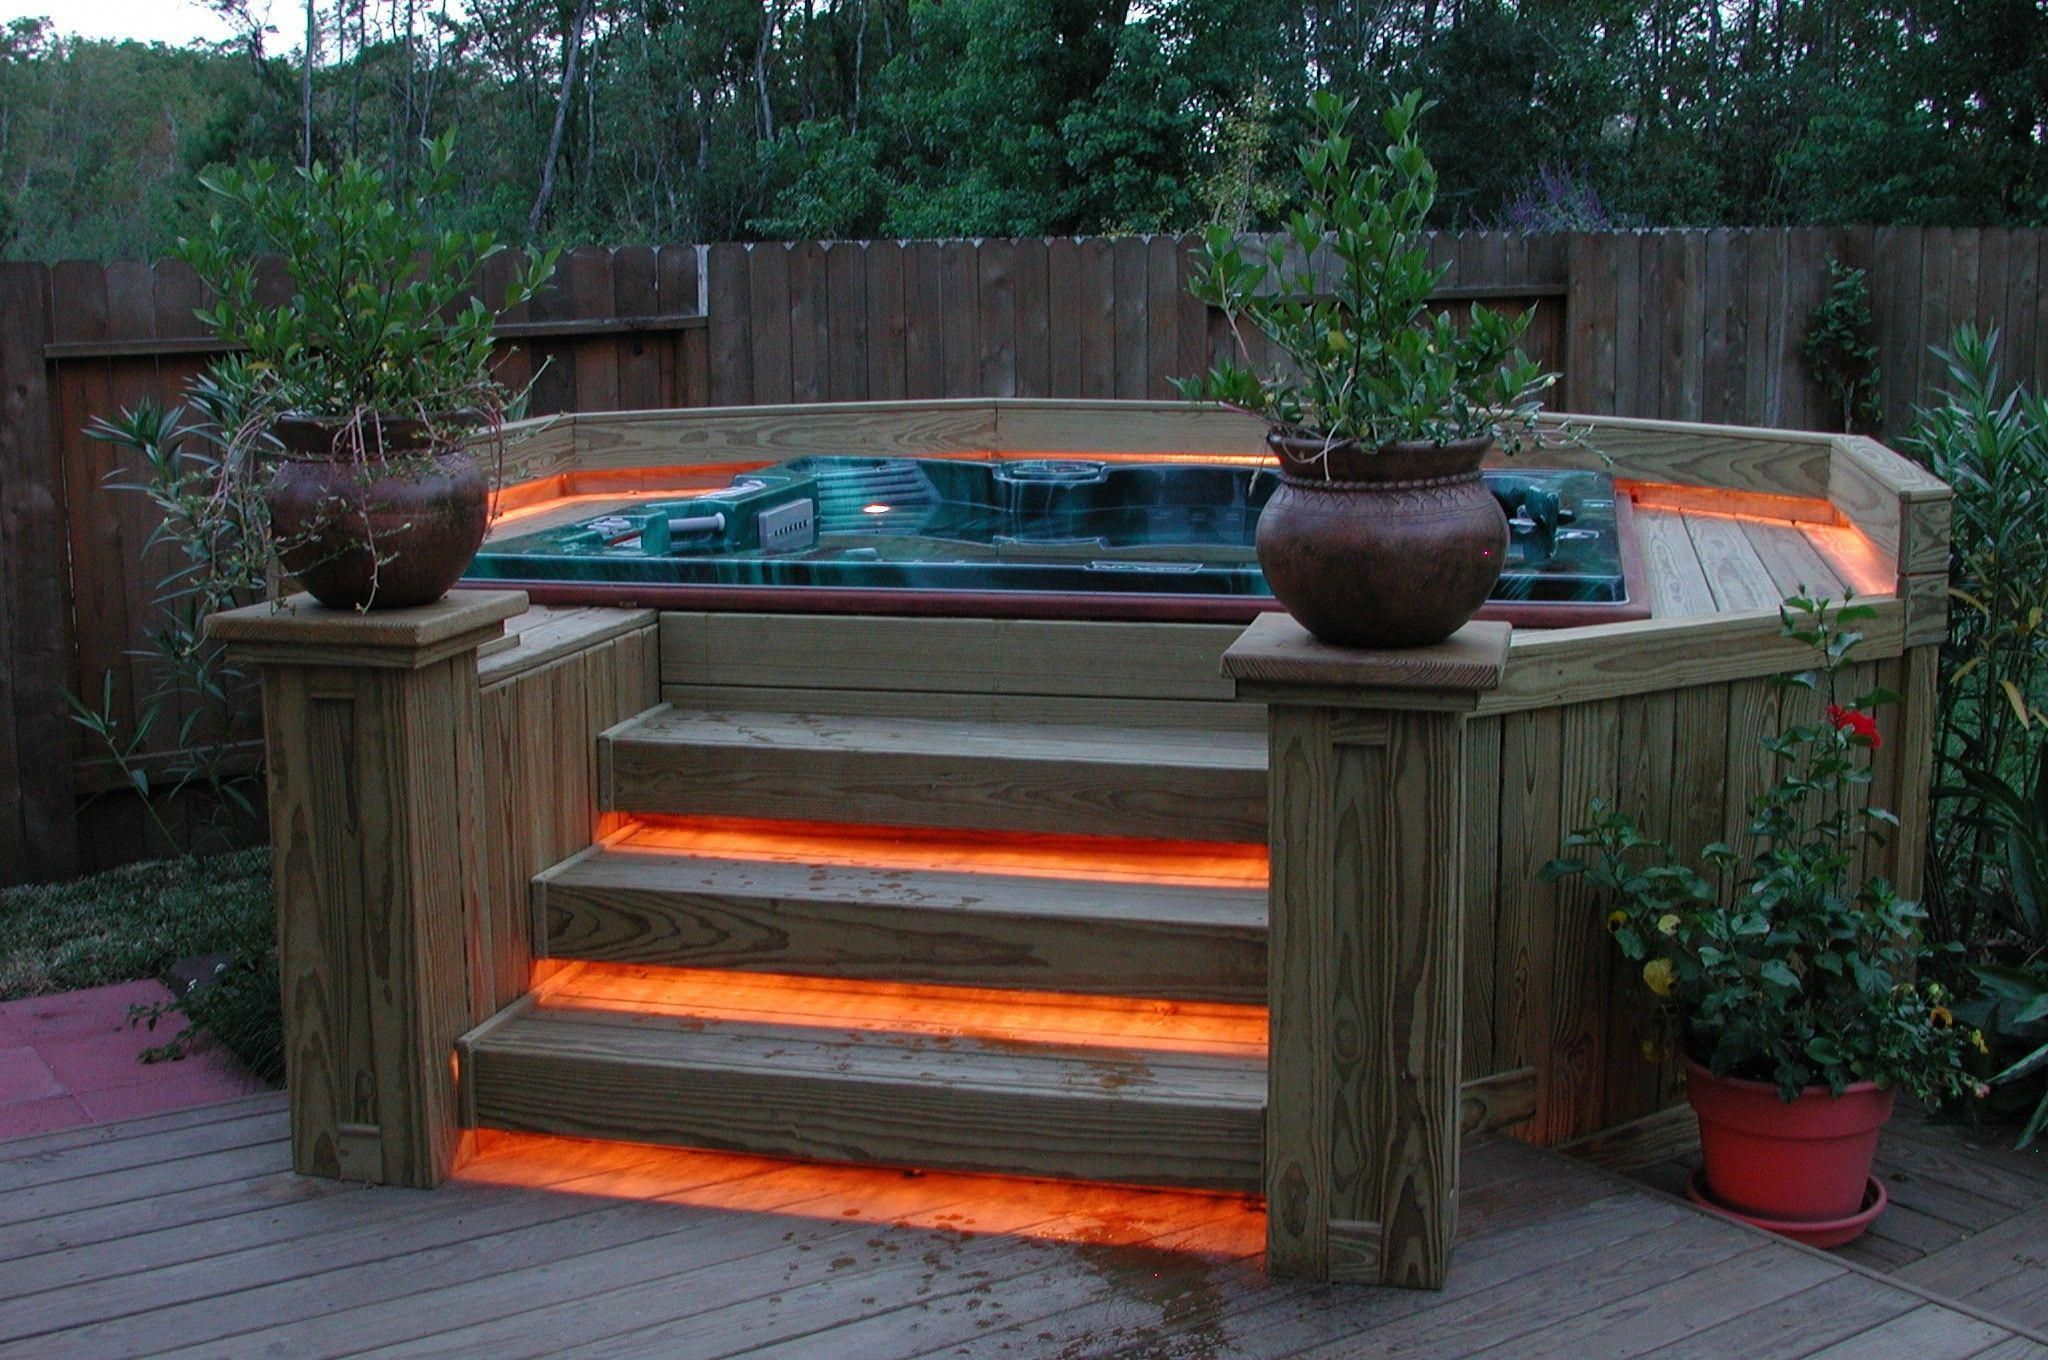 wooden hot tub deck idea instead of in ground. Maybe not the orange lights, but a different color :) #hottubdeck wooden hot tub deck idea instead of in ground. Maybe not the orange lights, but a different color :) #hottubdeck